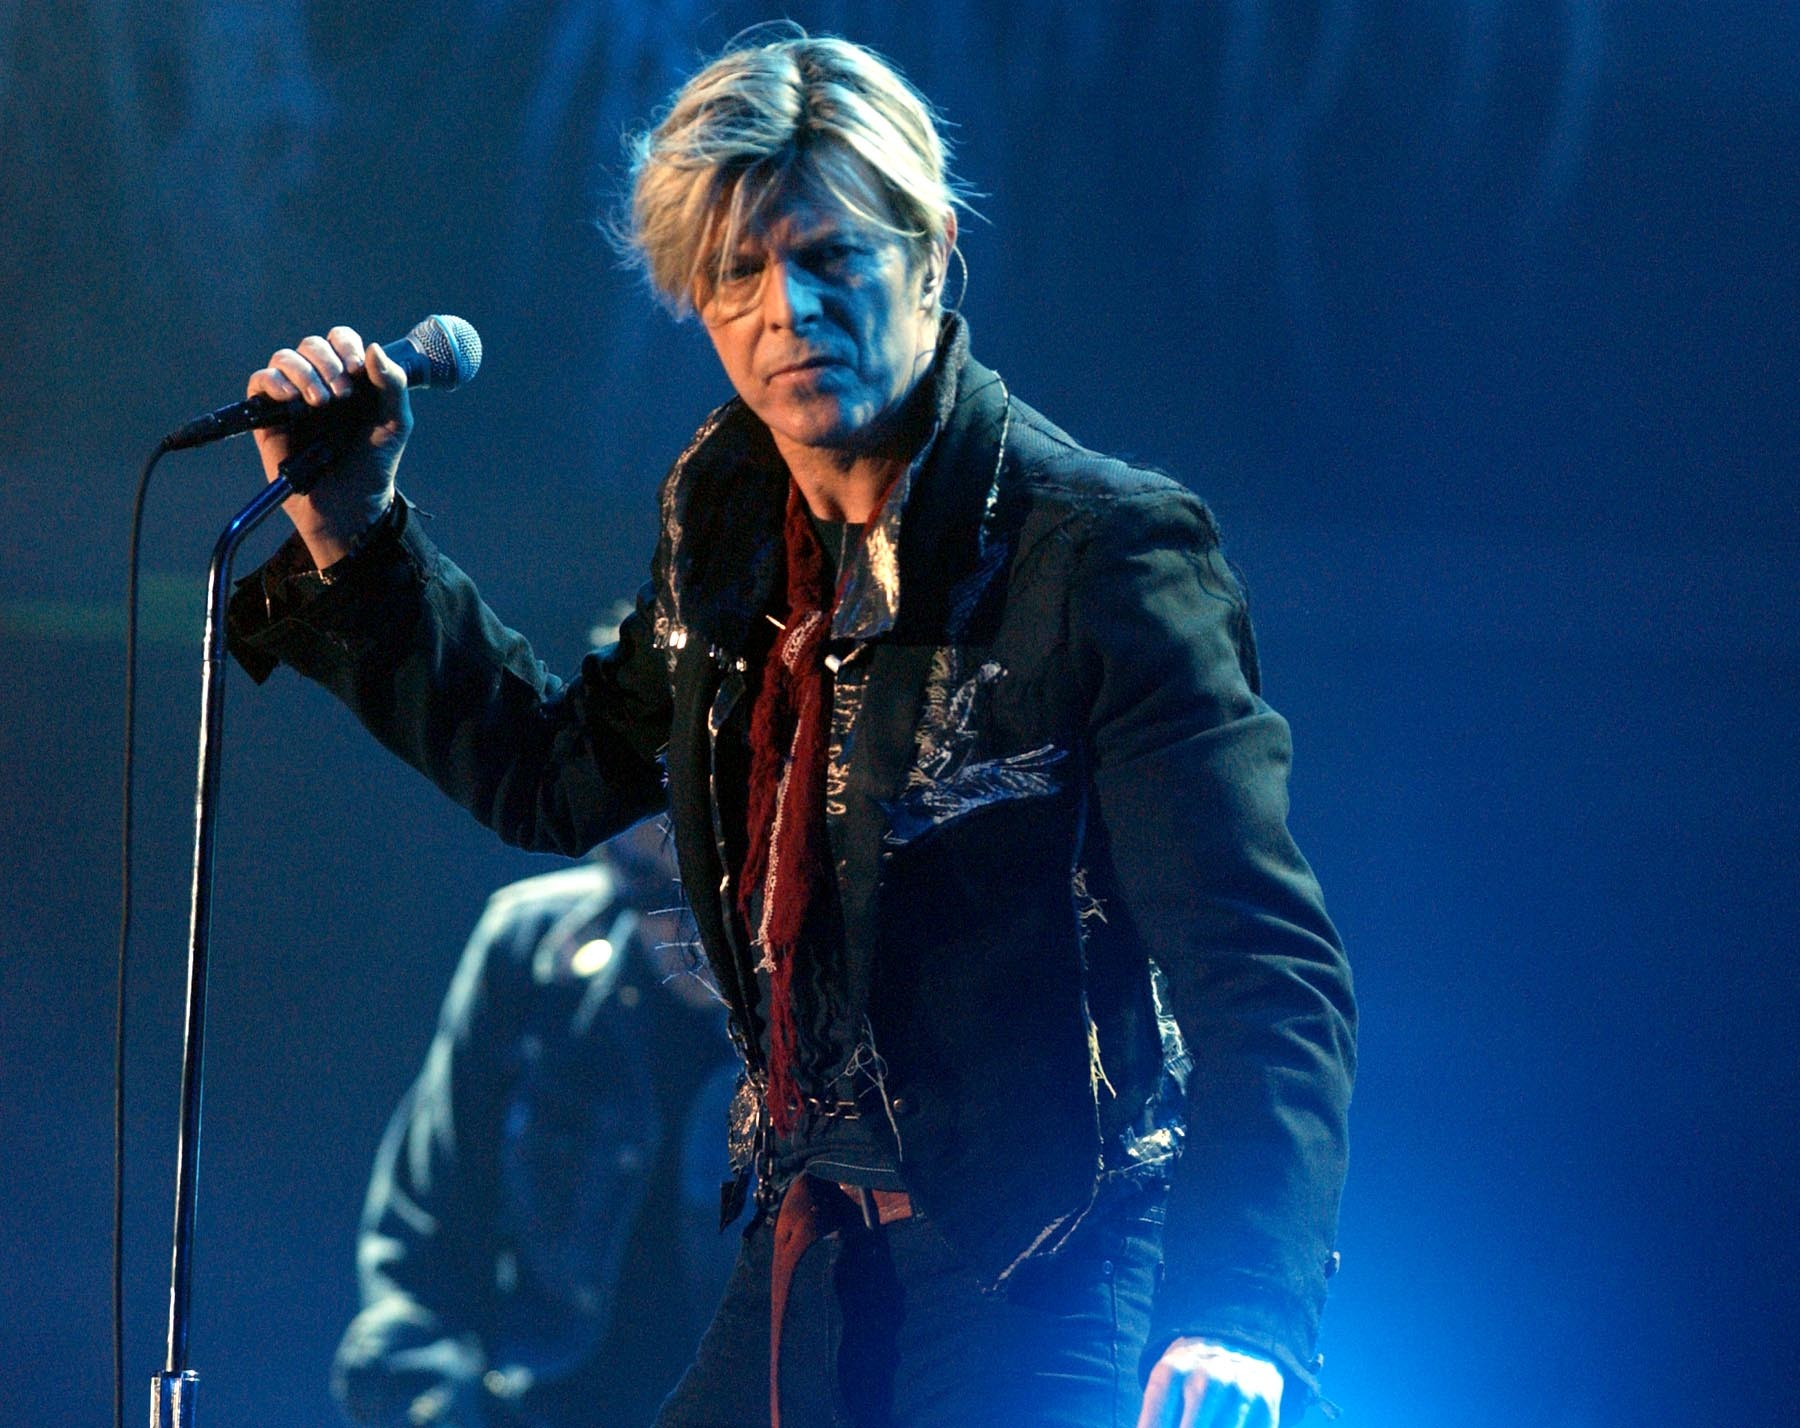 David Bowie on stage in 2003 (Andy Butterton/PA)